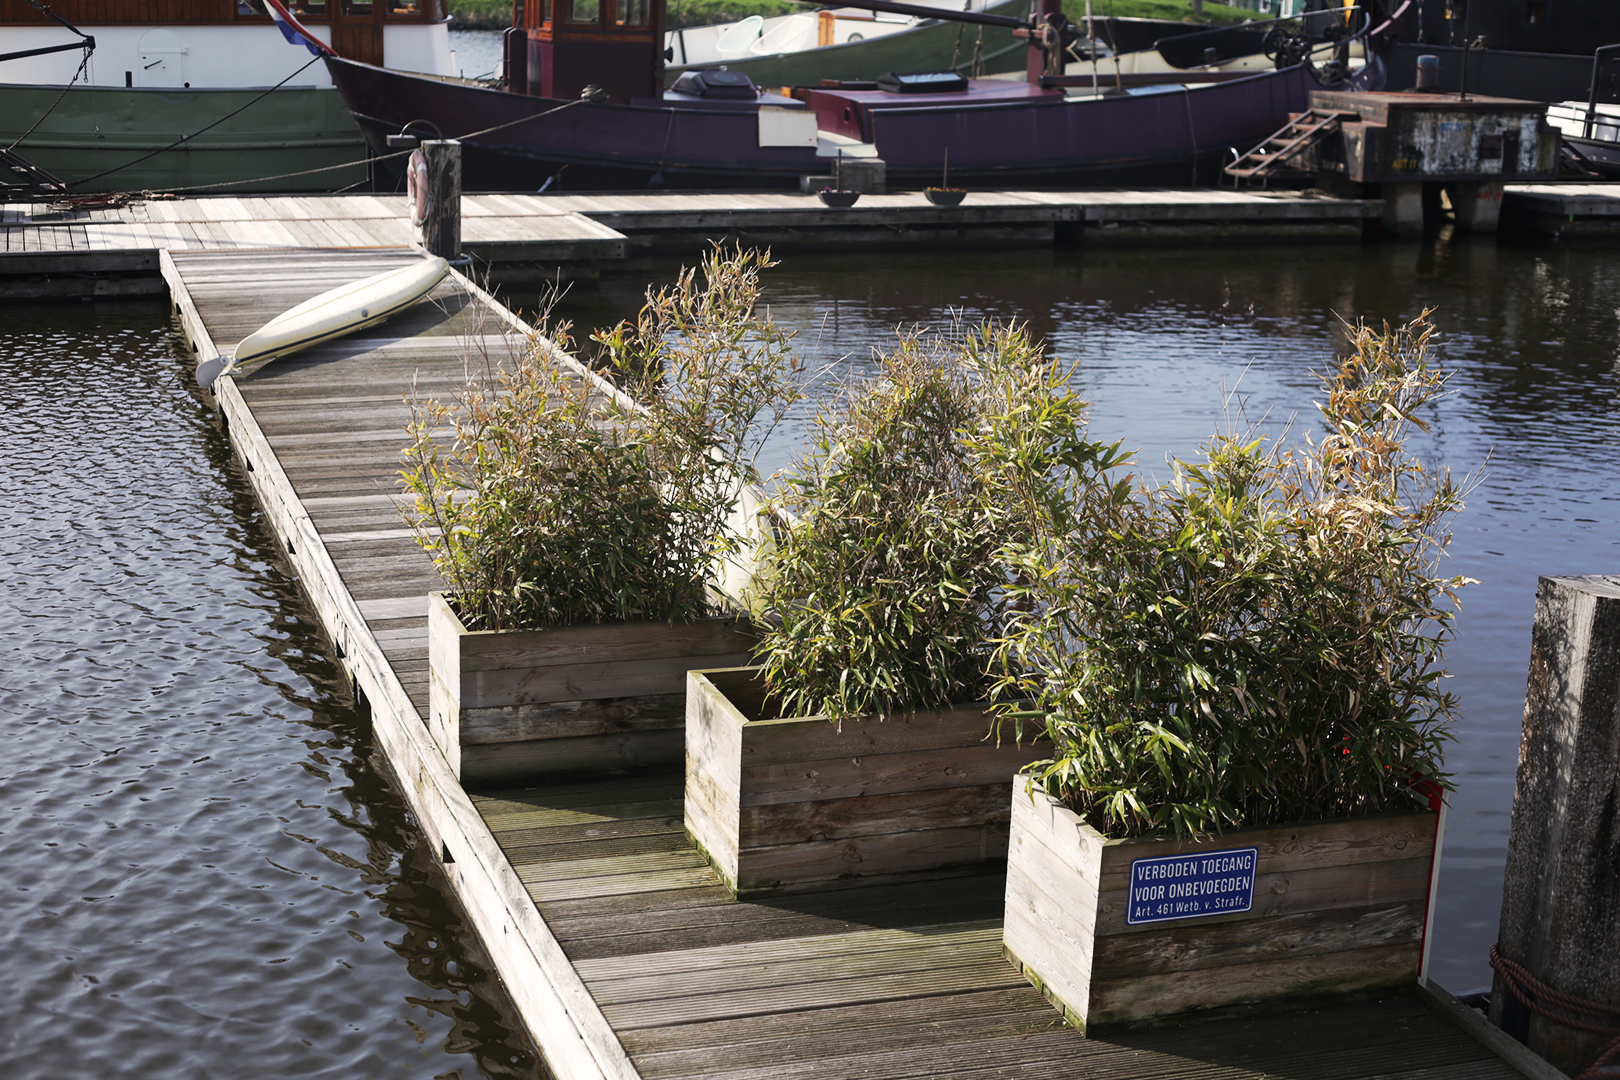 De Cuevel takes advantage of all the surrounding space for floating gardens and vegetation